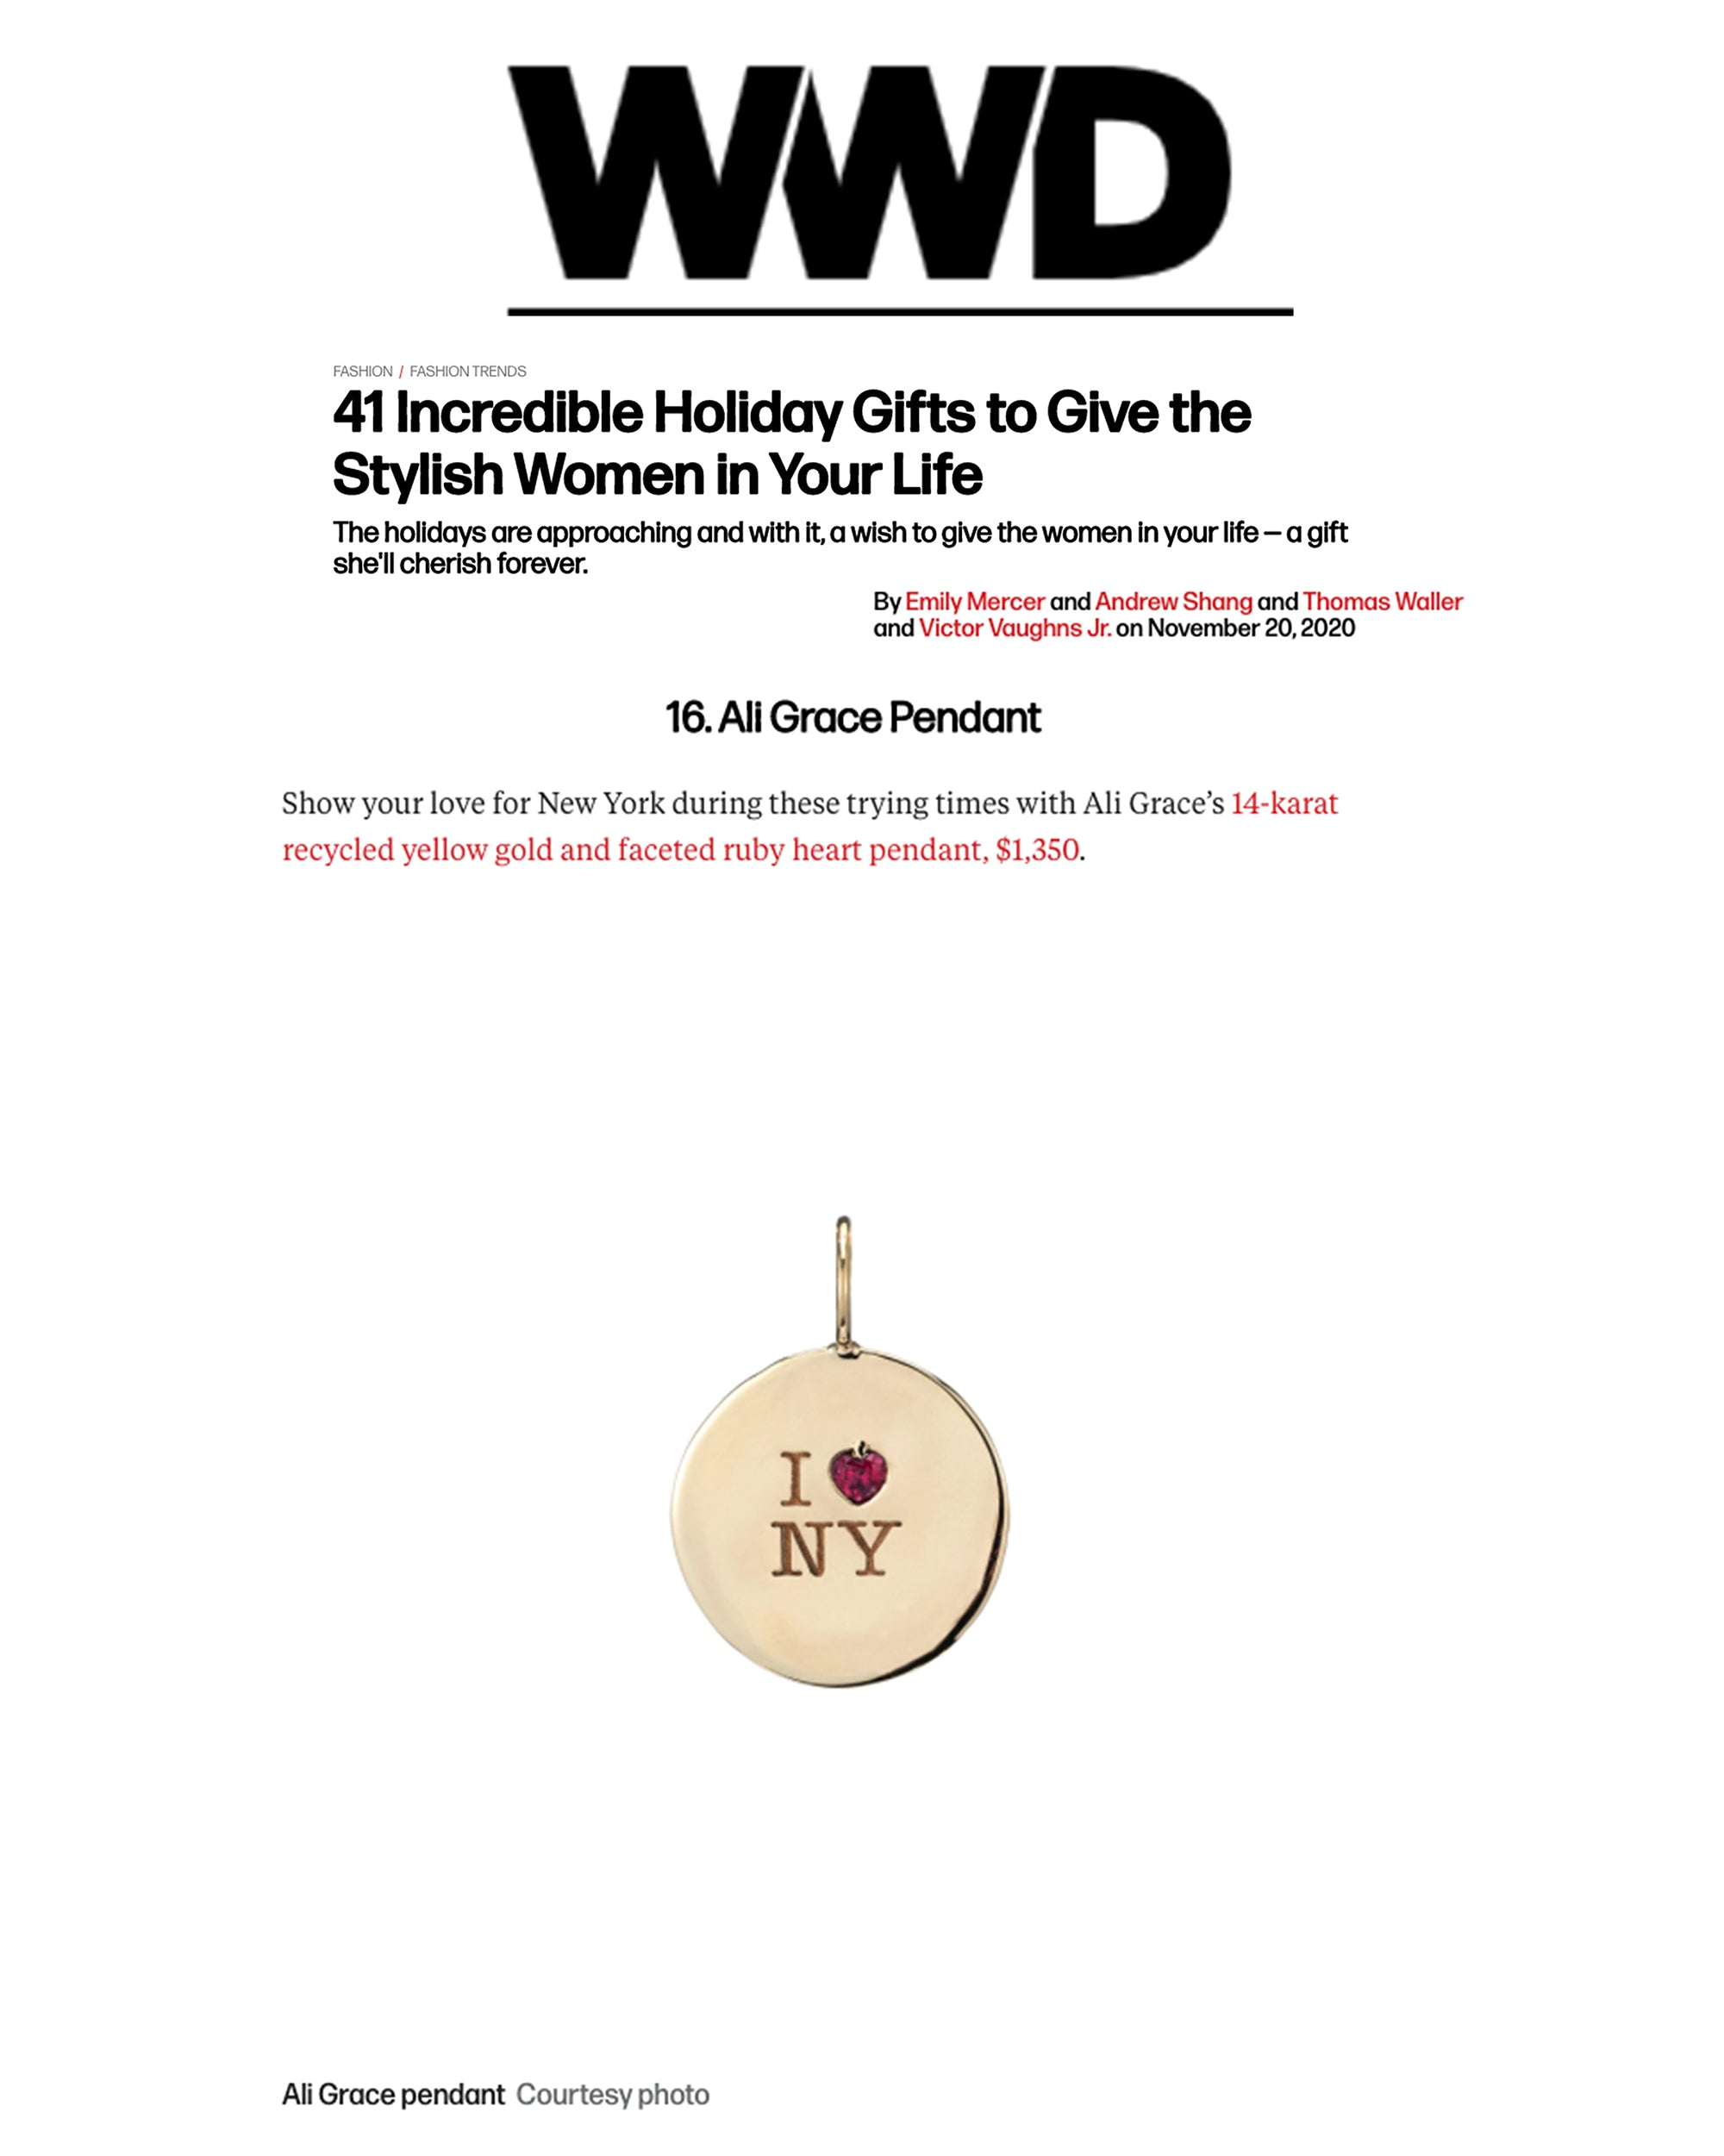 ali grace jewelry WWD Holiday Gifts to Give to the Women in Your Life sustainable fashion ethical jewelry